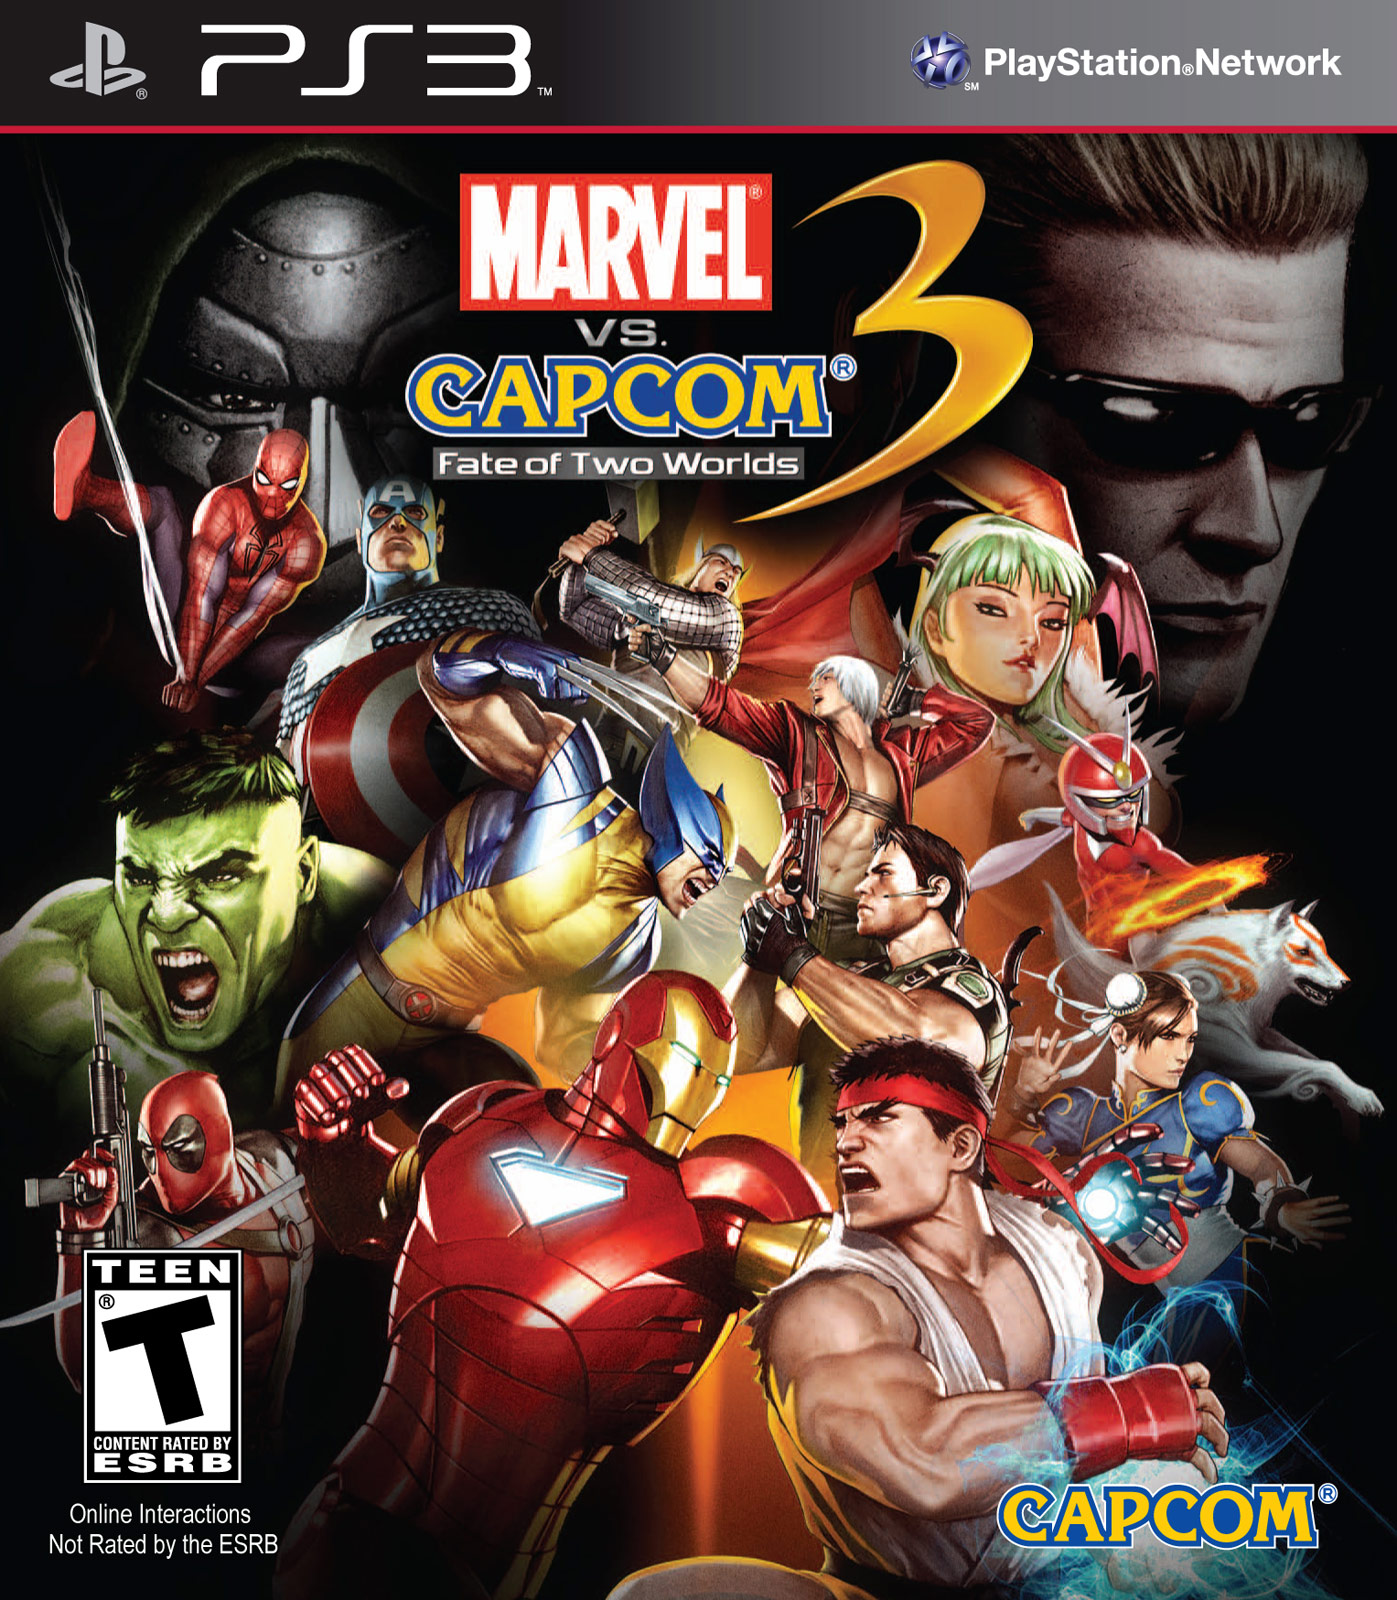 Marvel vs. Capcom 3 Art Gallery 14 out of 16 image gallery